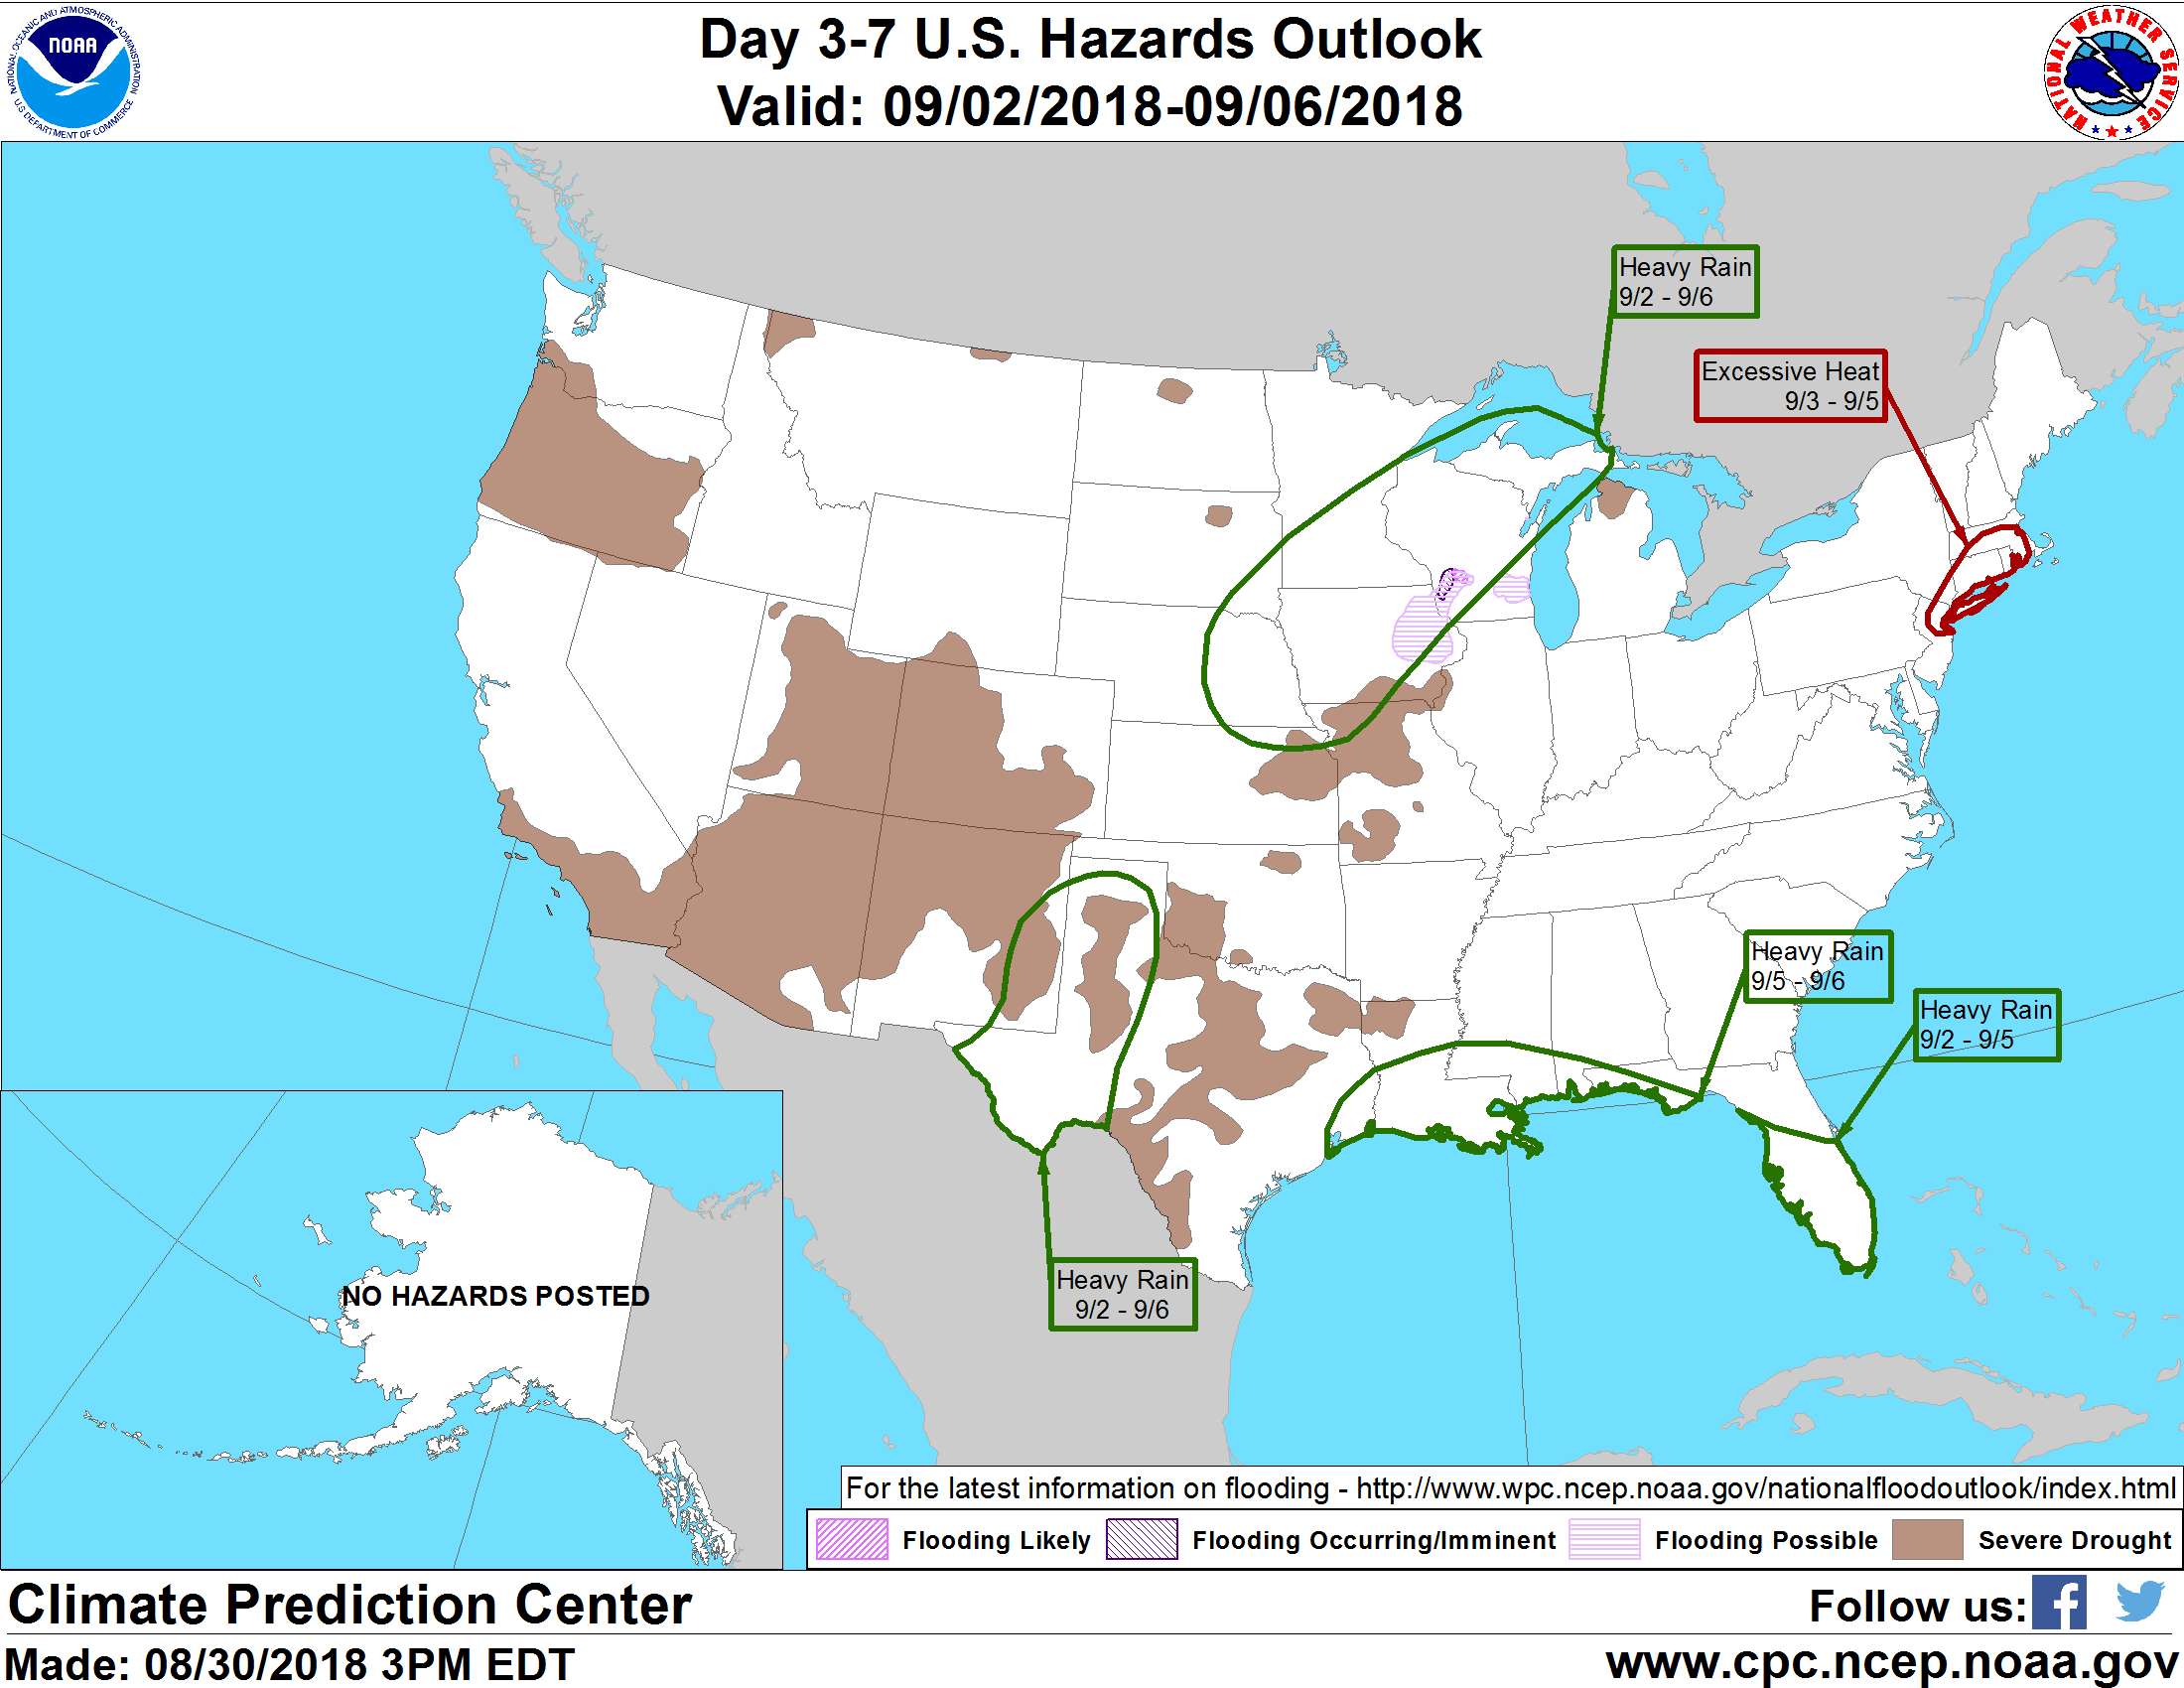 Labor Day Weekend Weather Outlook: Should You Expect Rain or